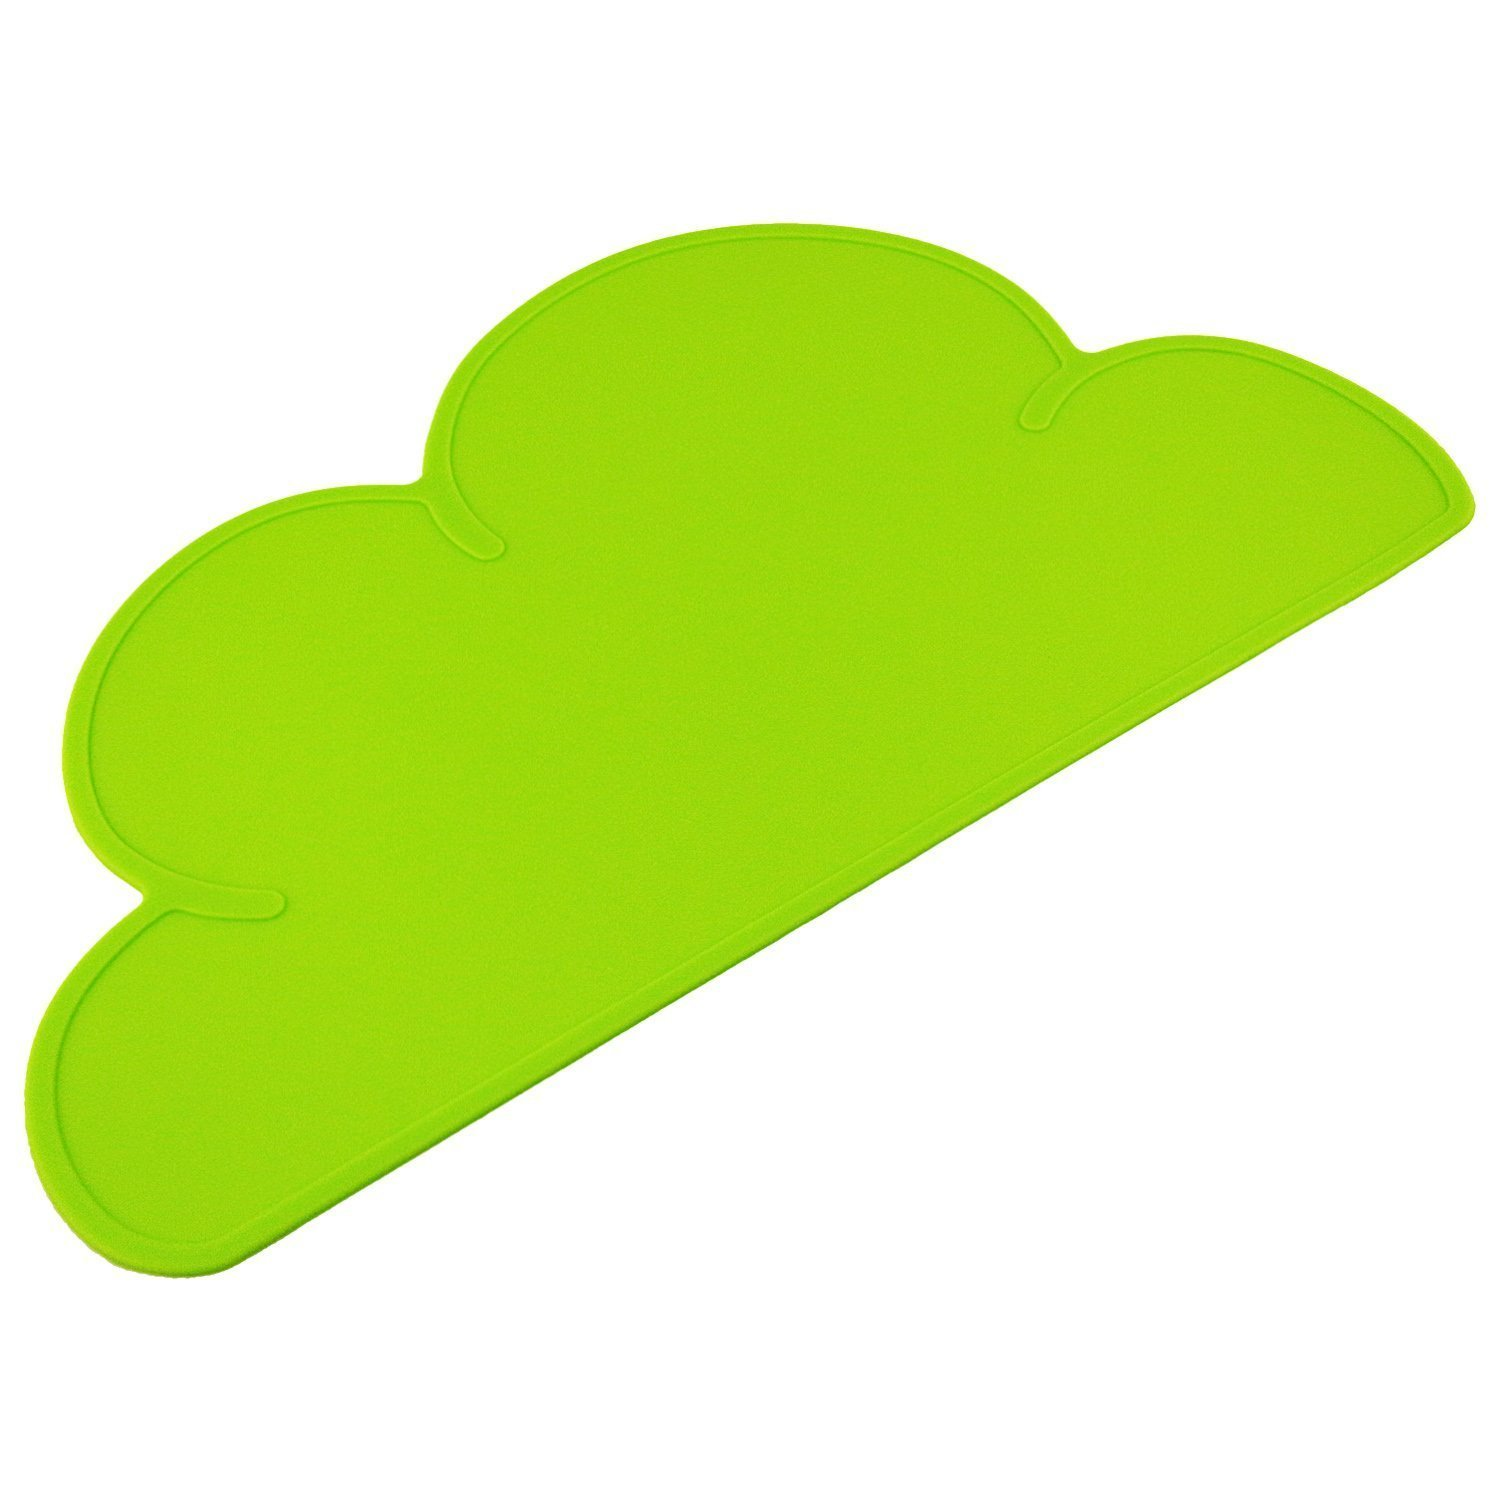 Da.Wa Baby Silicone Cloud Shaped Placemat Non-slipHeat Resistant Infant Plate Table Mat for Babies Toddlers And Kids (Green)